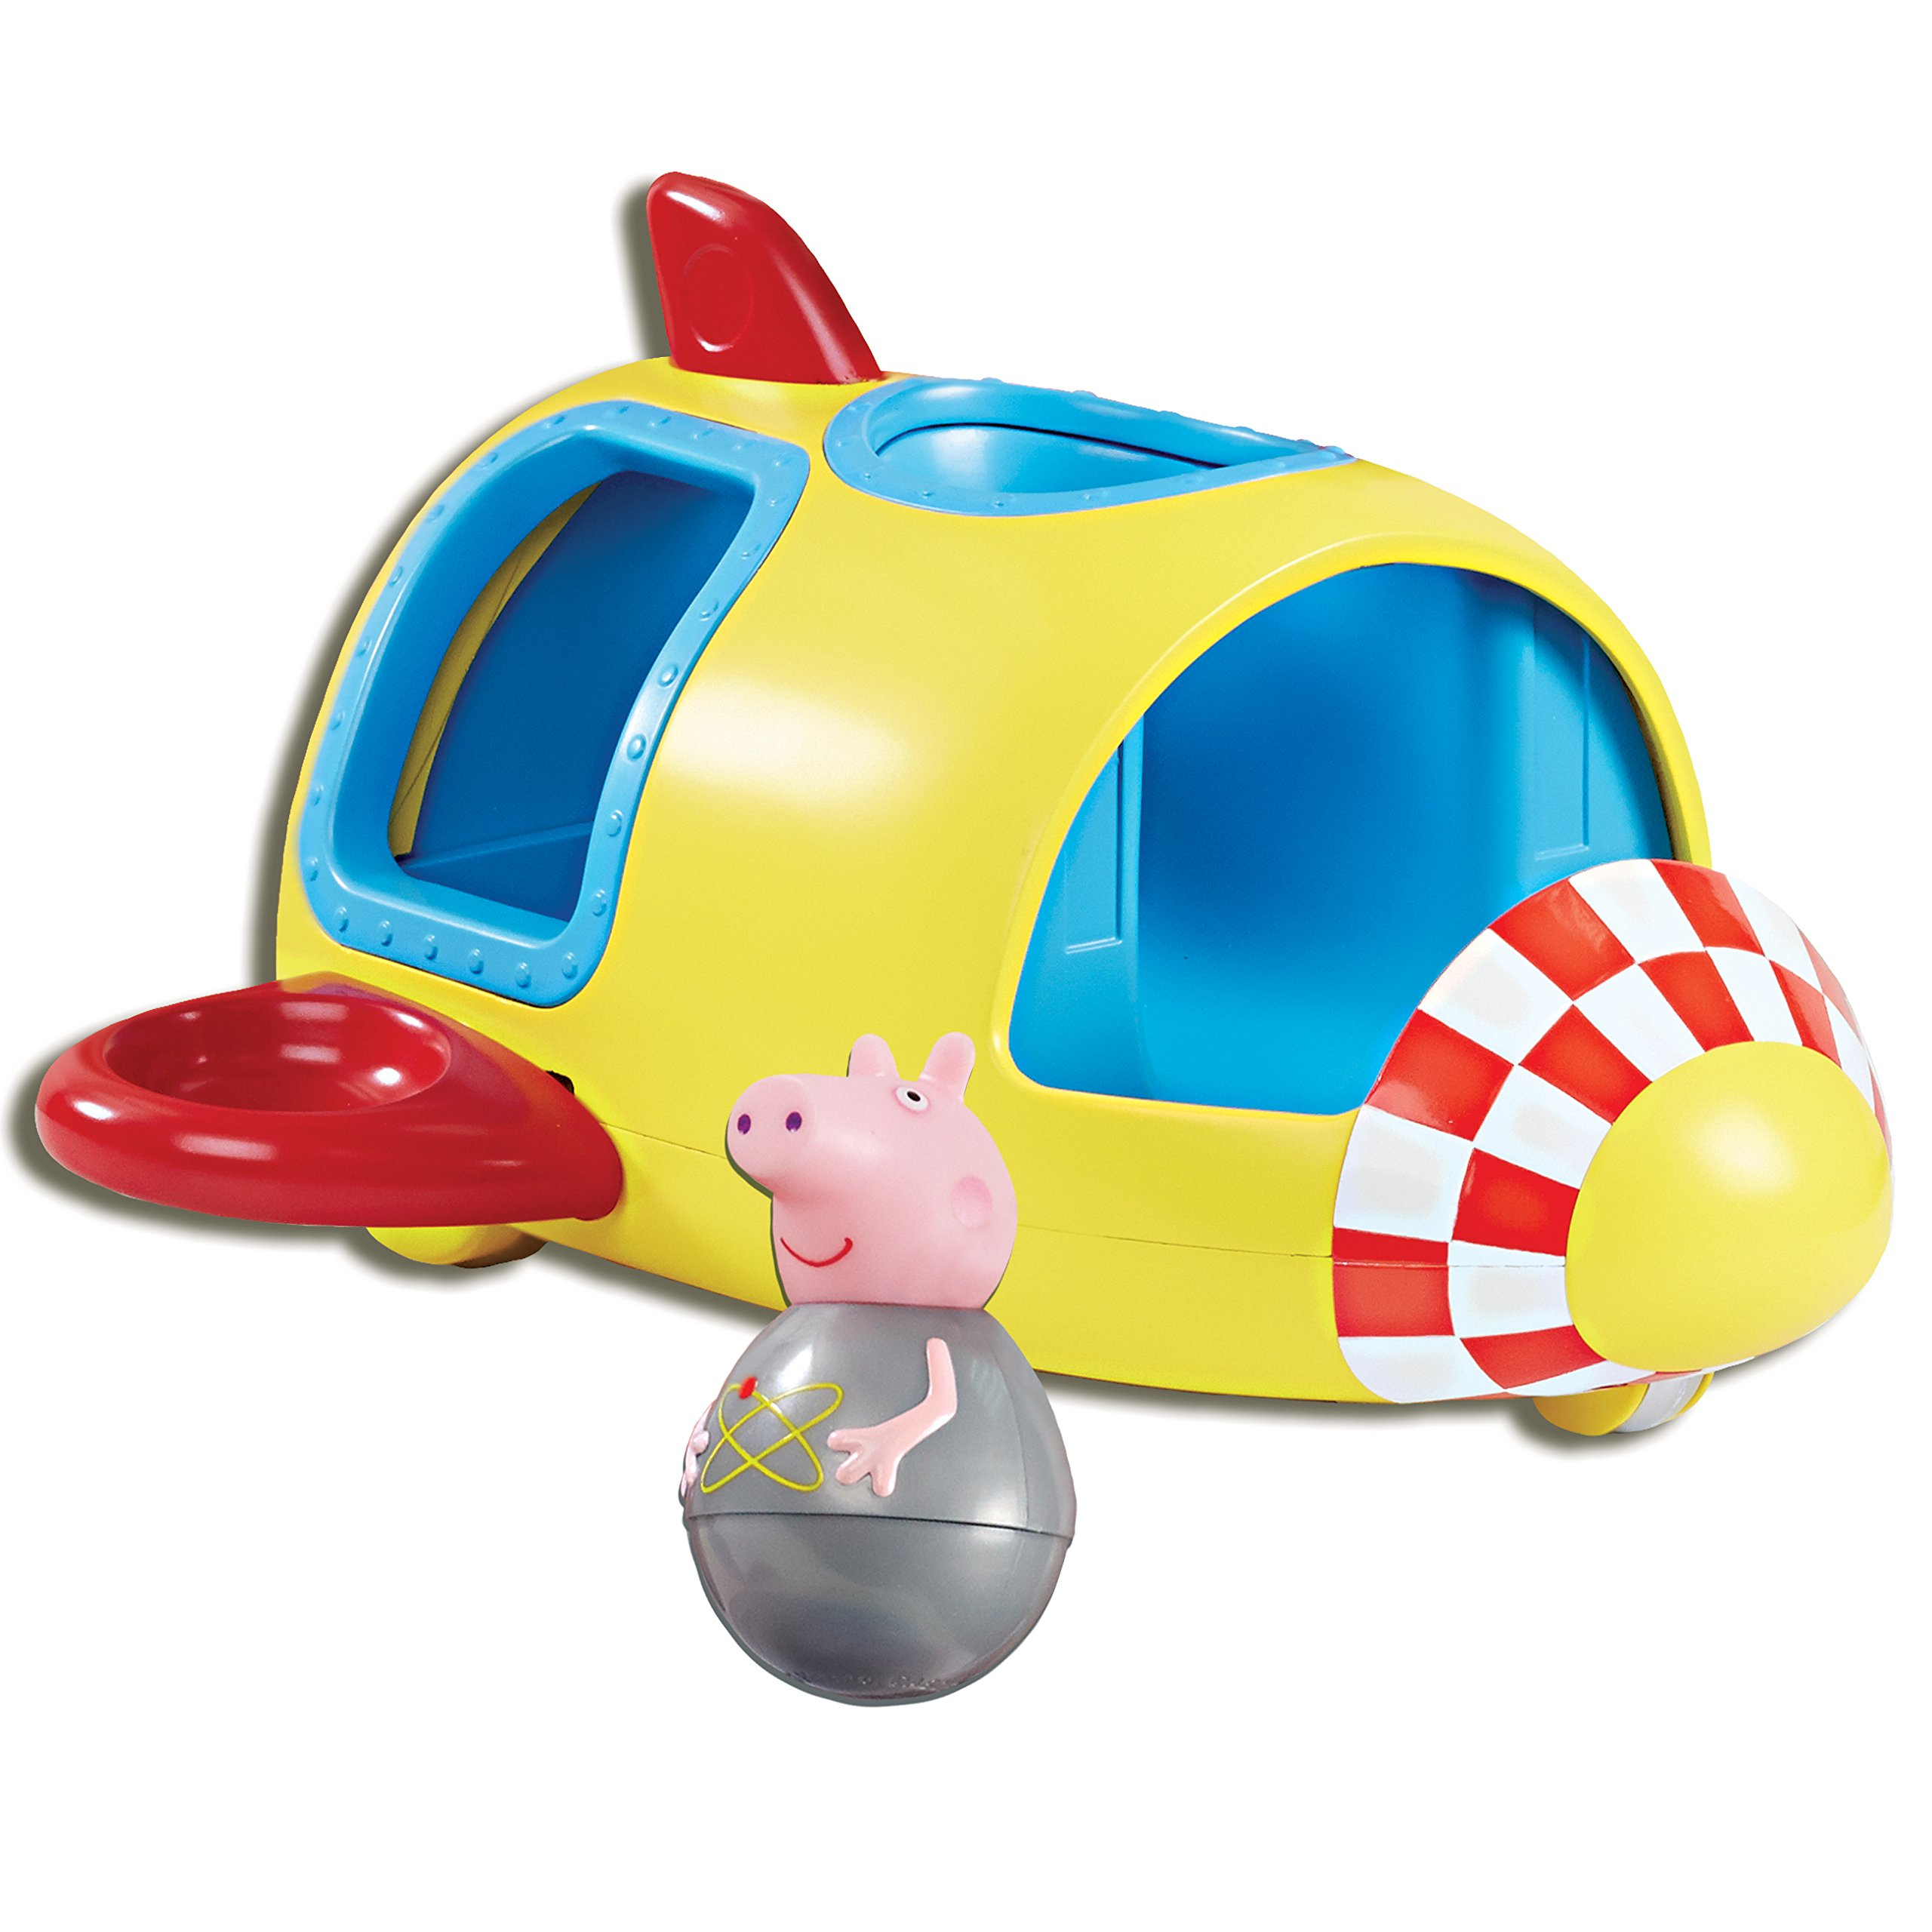 Push Rocket for 'wibble wobble' motion Peppa won't fall down Includes ...